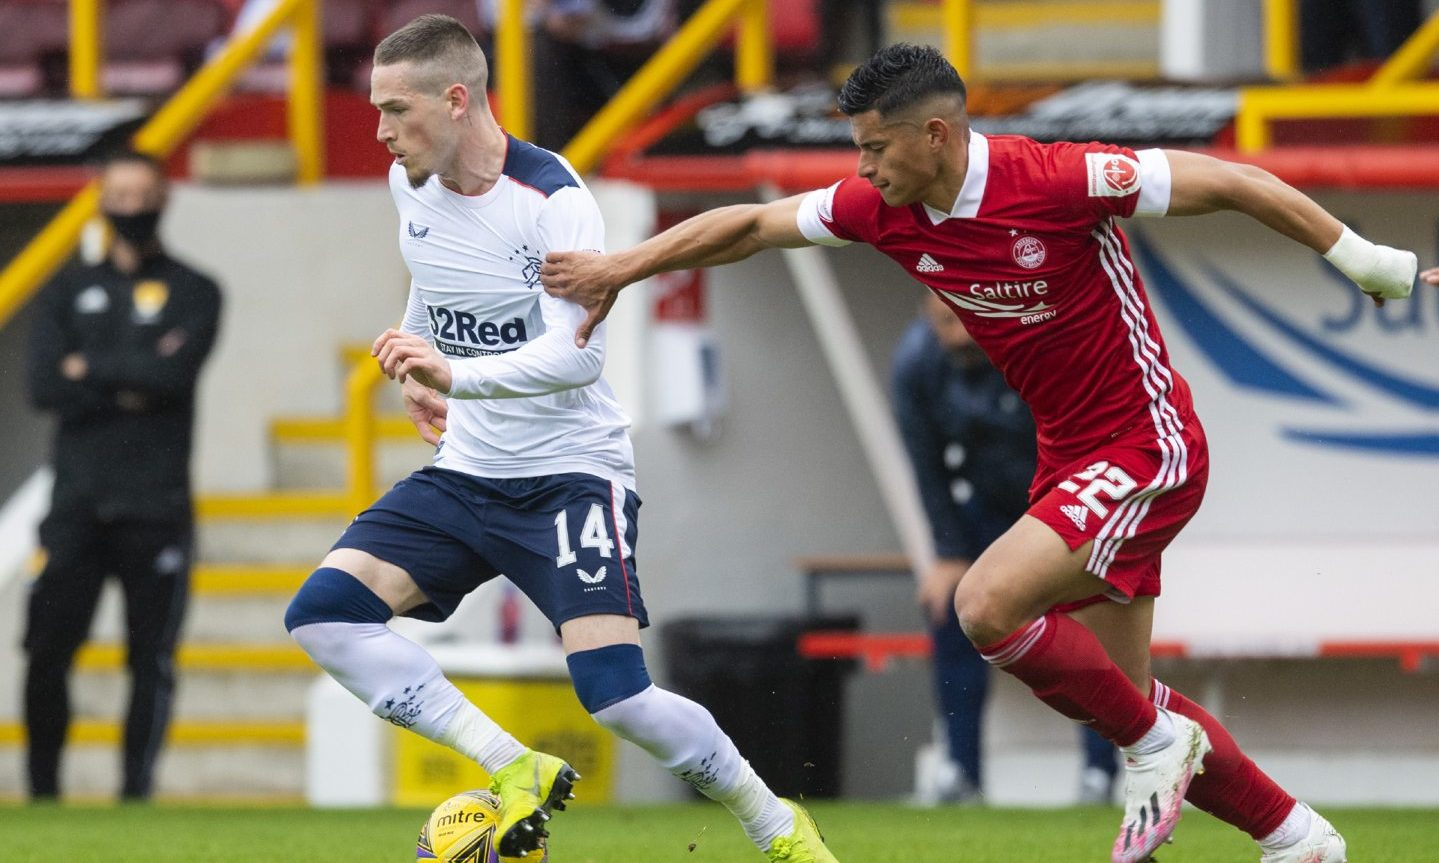 Rangers' Ryan Kent holds off Aberdeen's Ronald Hernandez during the Scottish Premiership match between Aberdeen and Rangers at Pittodrie on August 1.